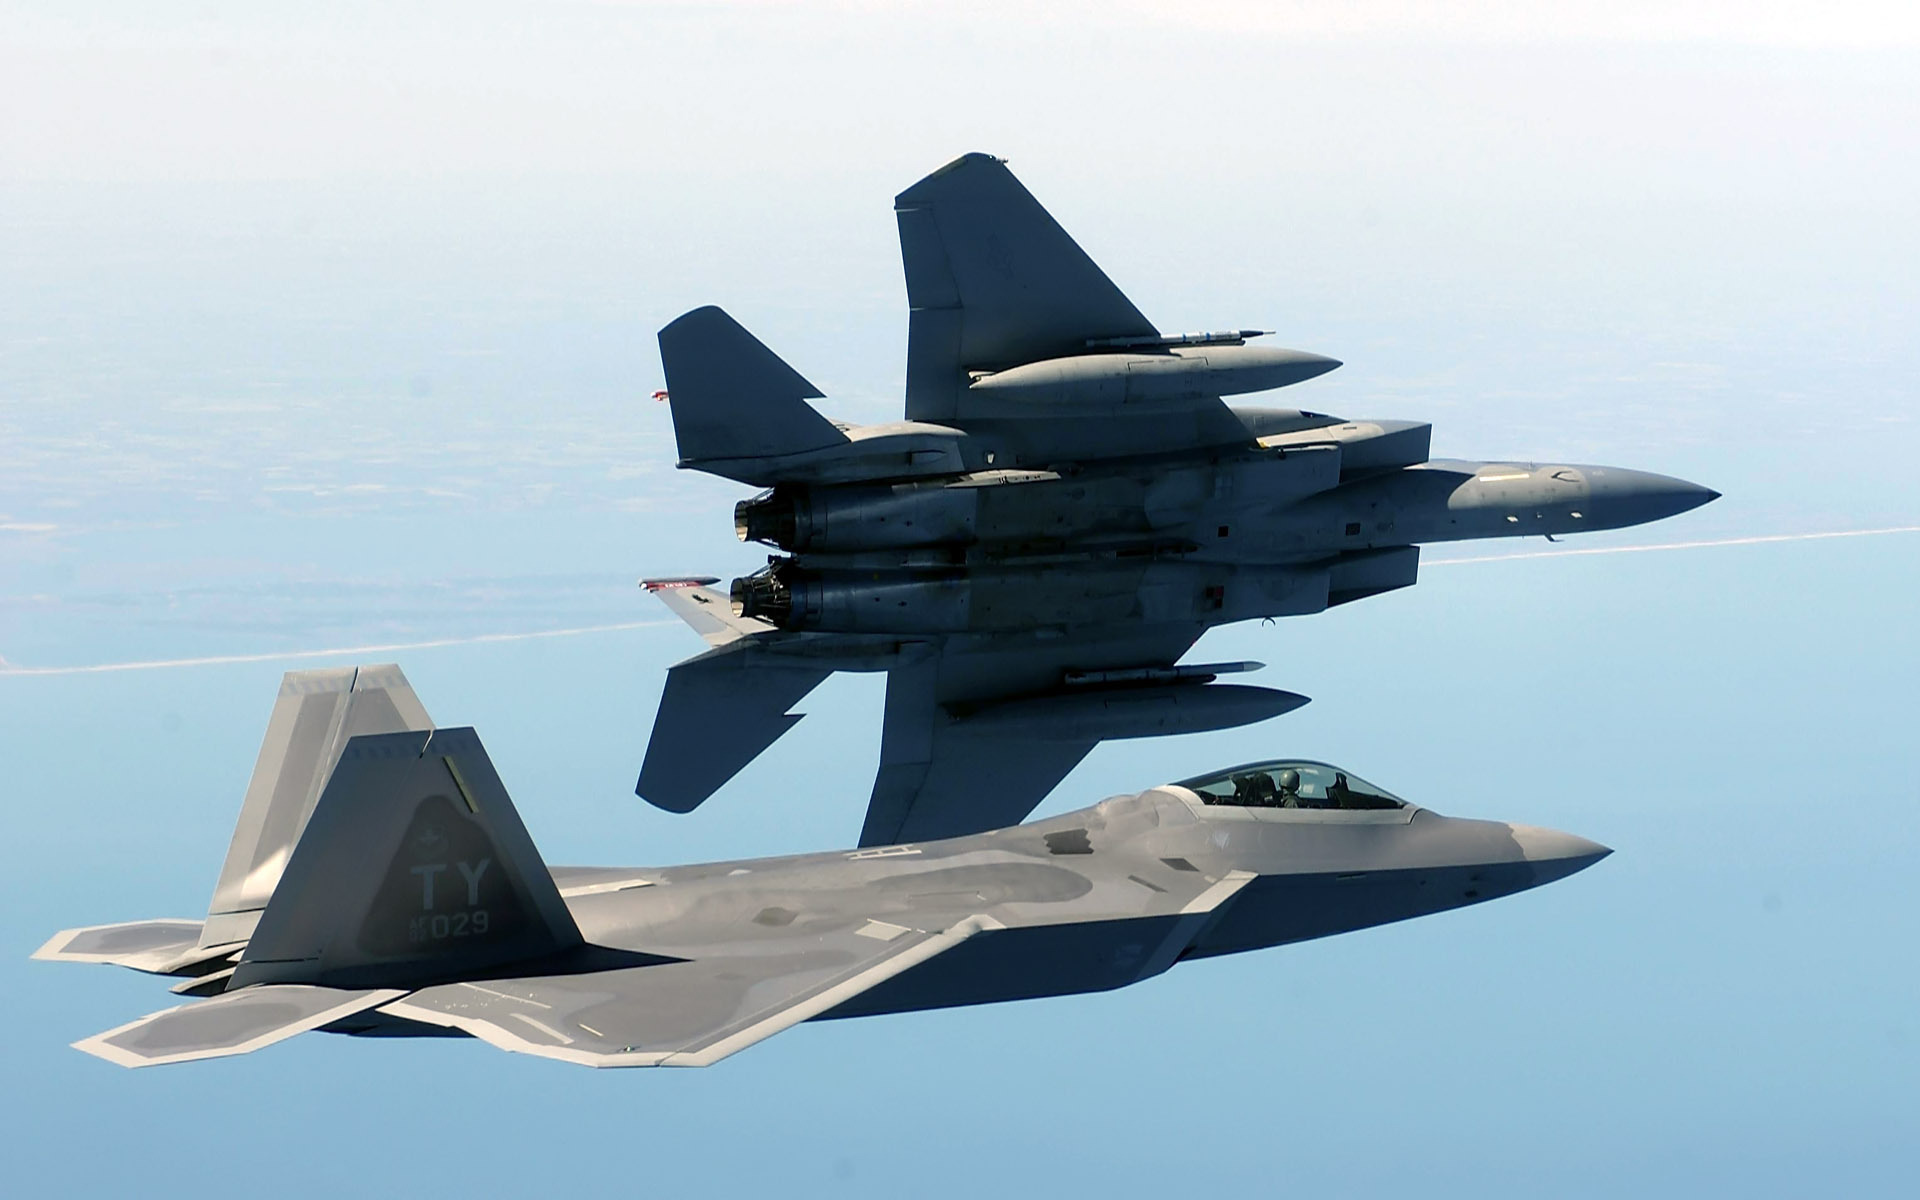 Awesome Air force and Jet Planes Wallpaper 20 pics THE JET LIFE 1920x1200